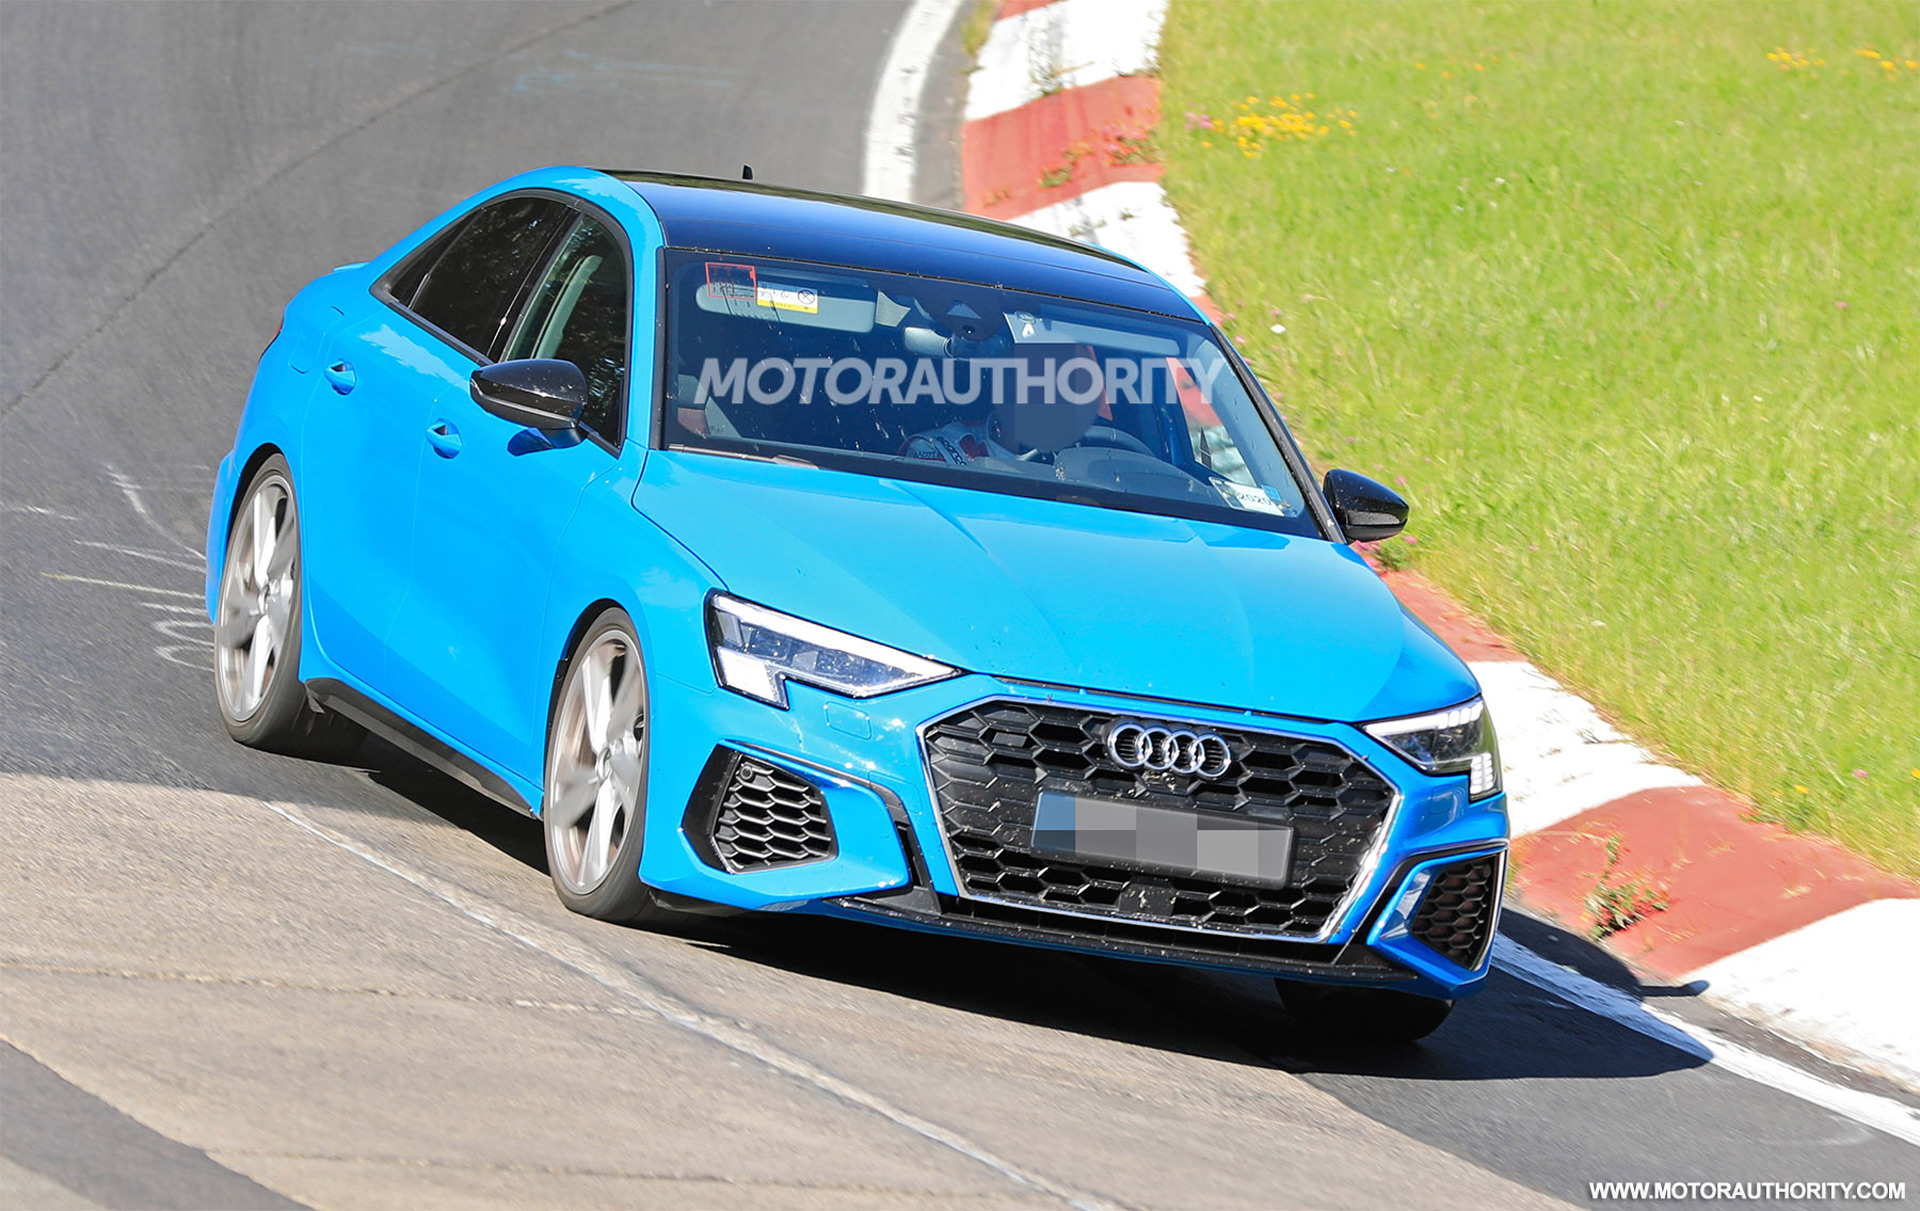 2022 Audi S3 spy shots and video